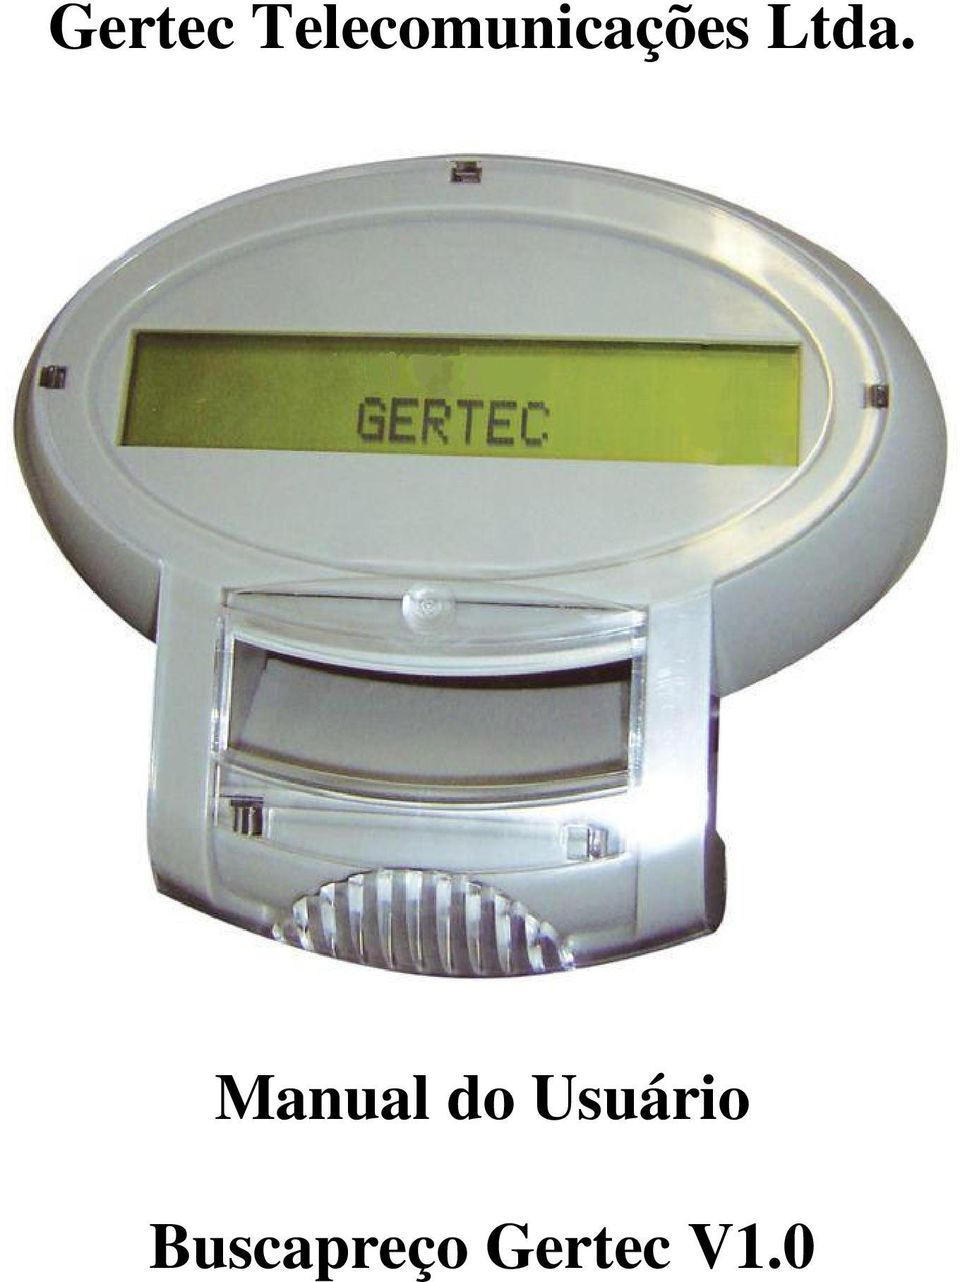 Ltda. Manual do